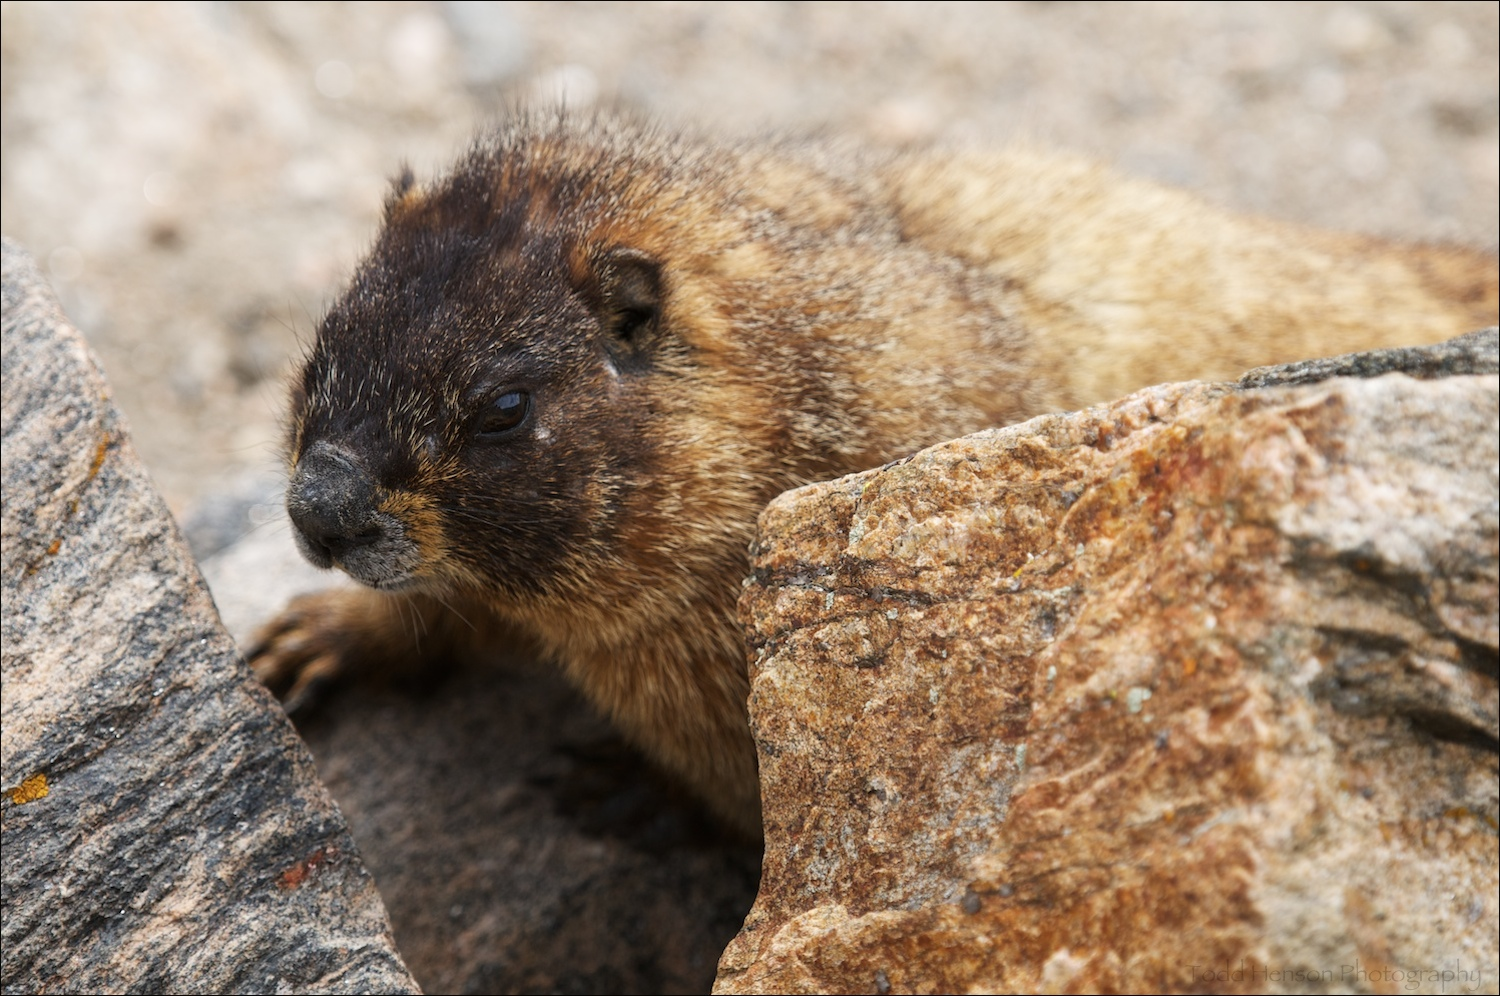 A Yellow-bellied Marmot that crawled right up beside me